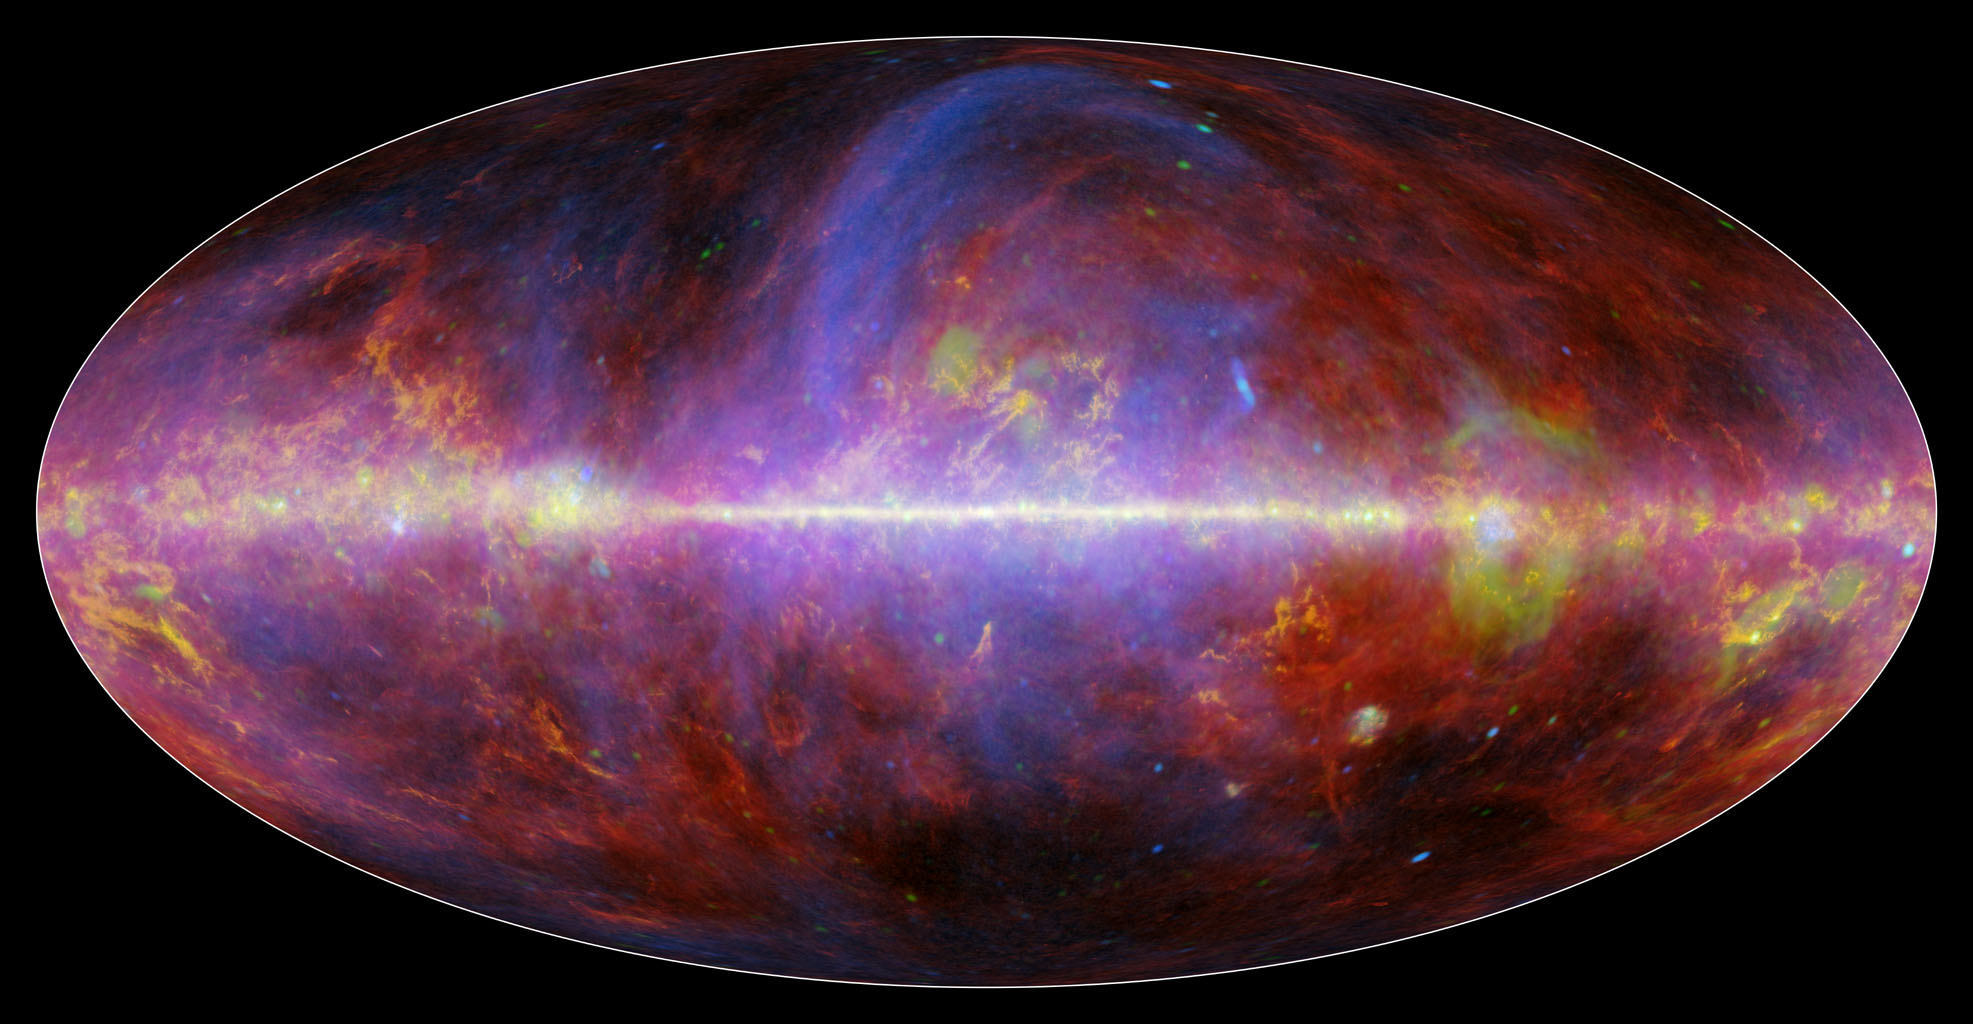 Space Images | A Milky Way 'Mixer' Amongst the Stars